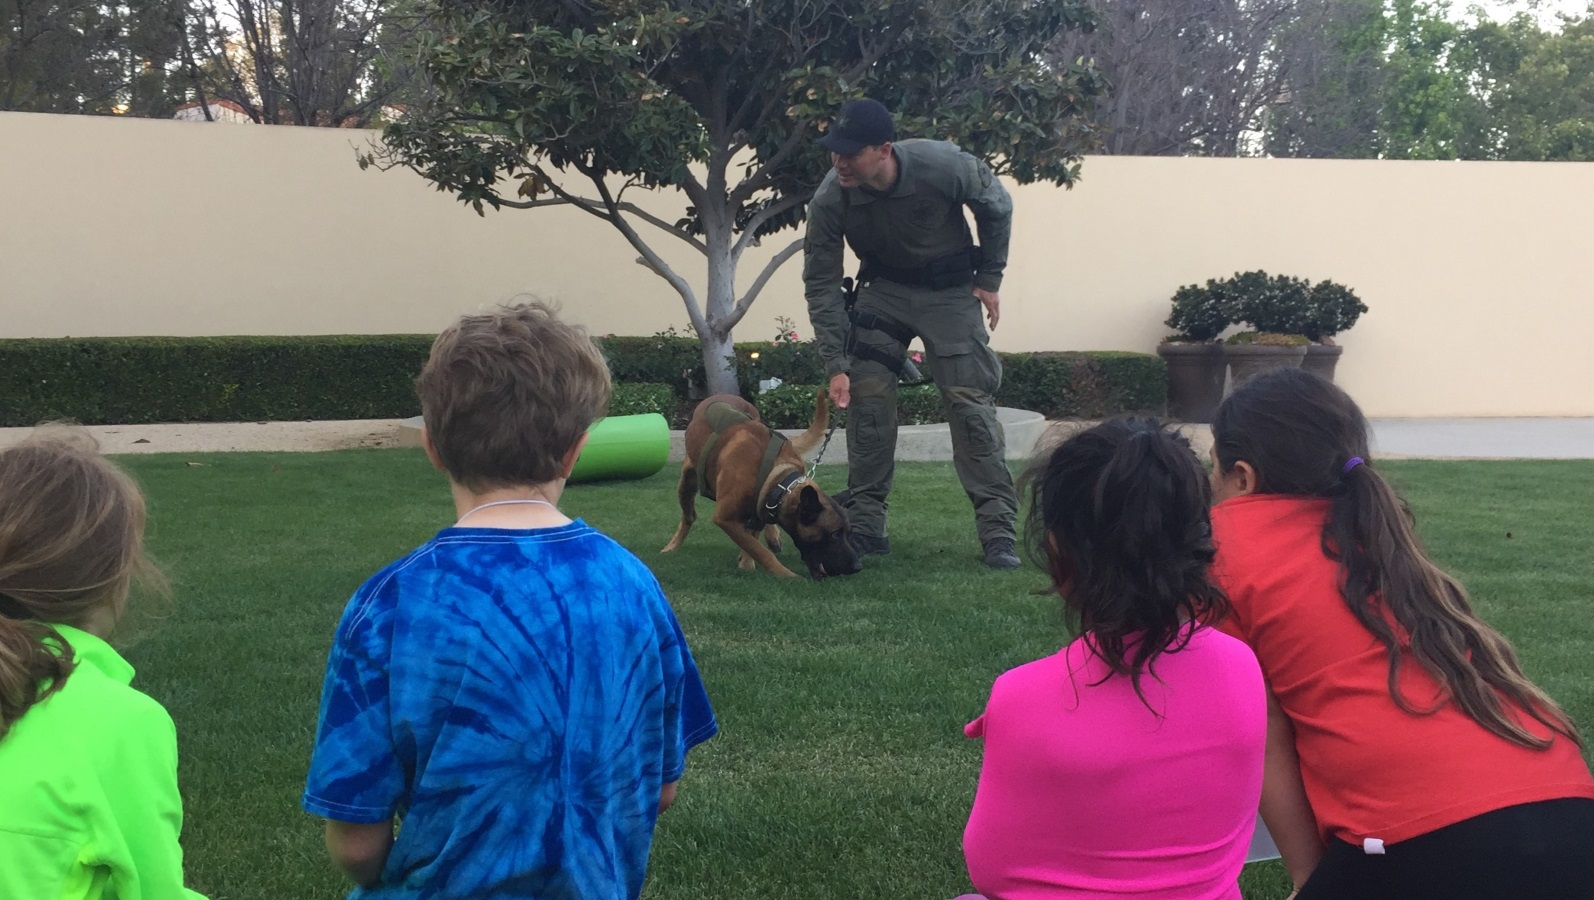 officer with training dog and young children